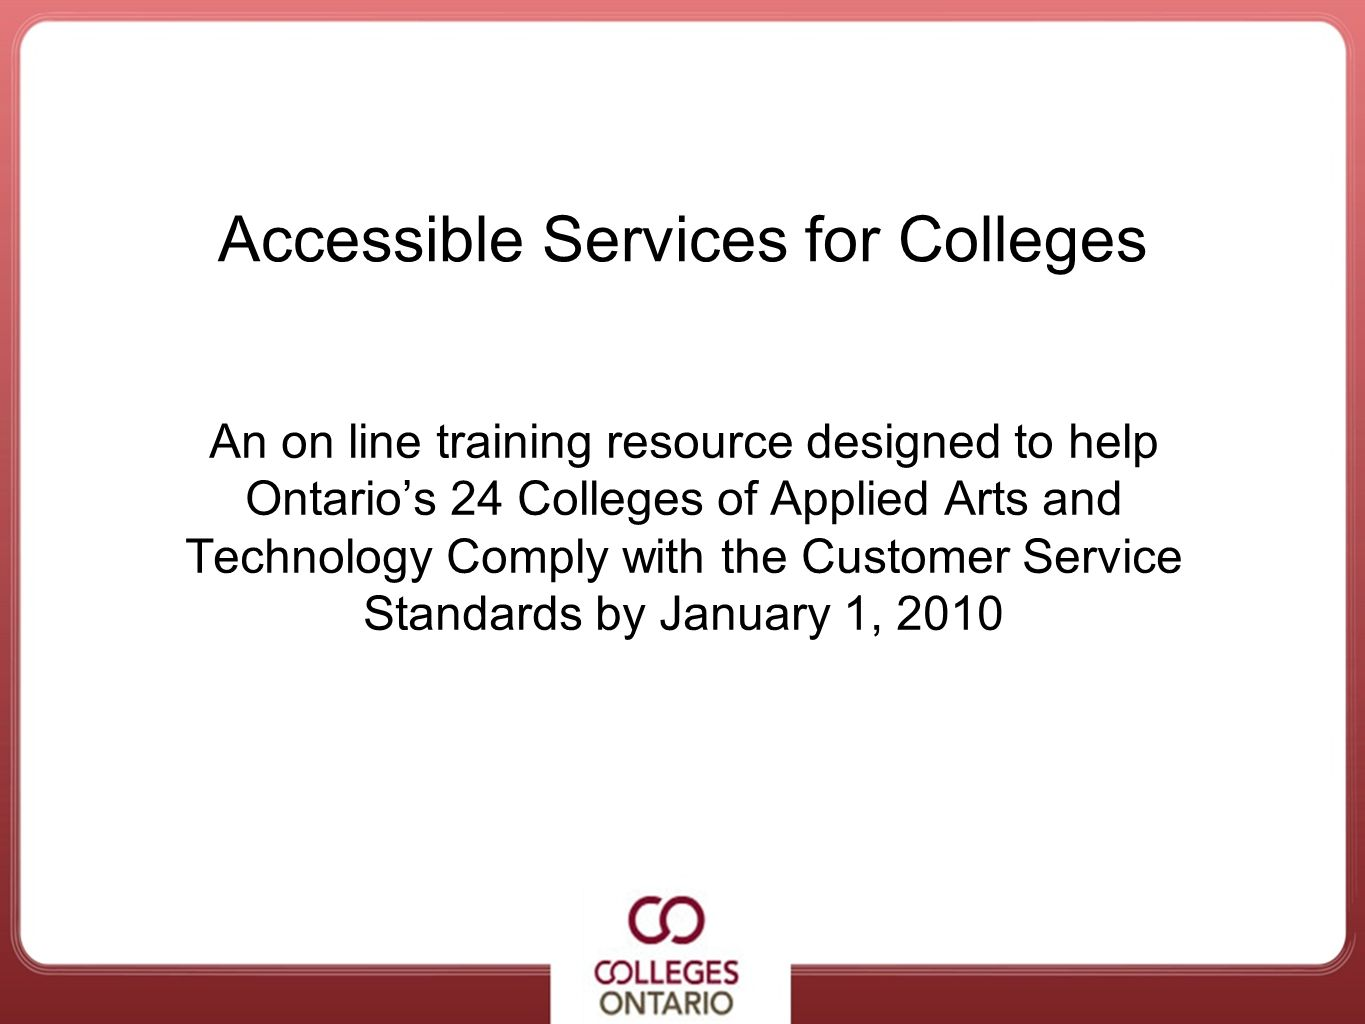 Accessible Services for Colleges